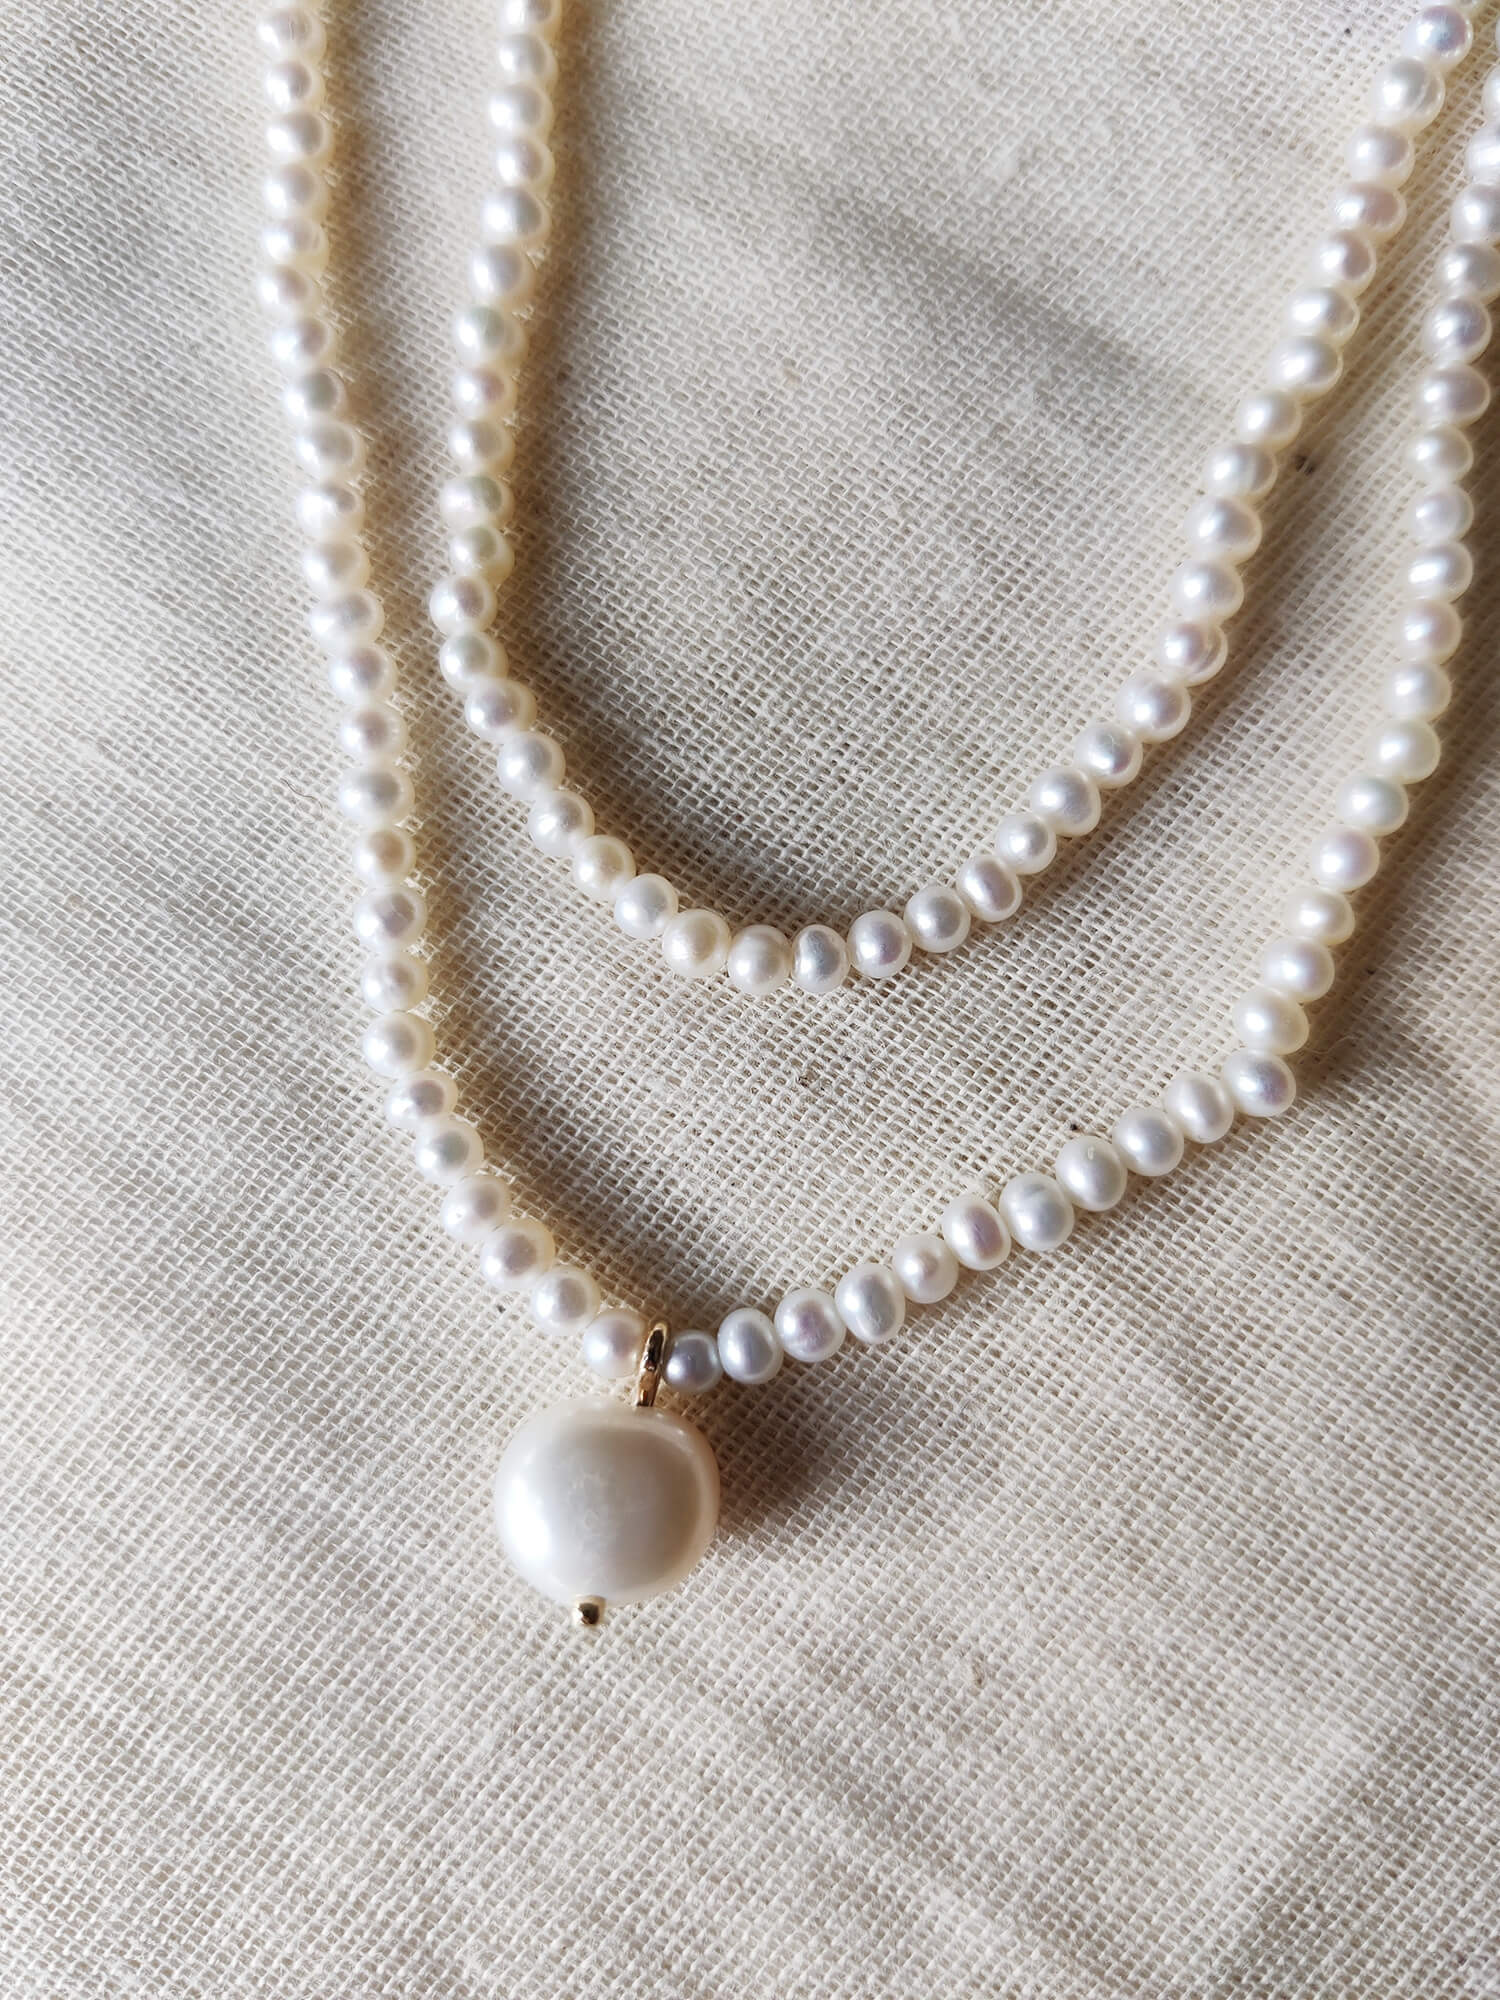 Double Pearl Choker Necklace with Baroque Pendant